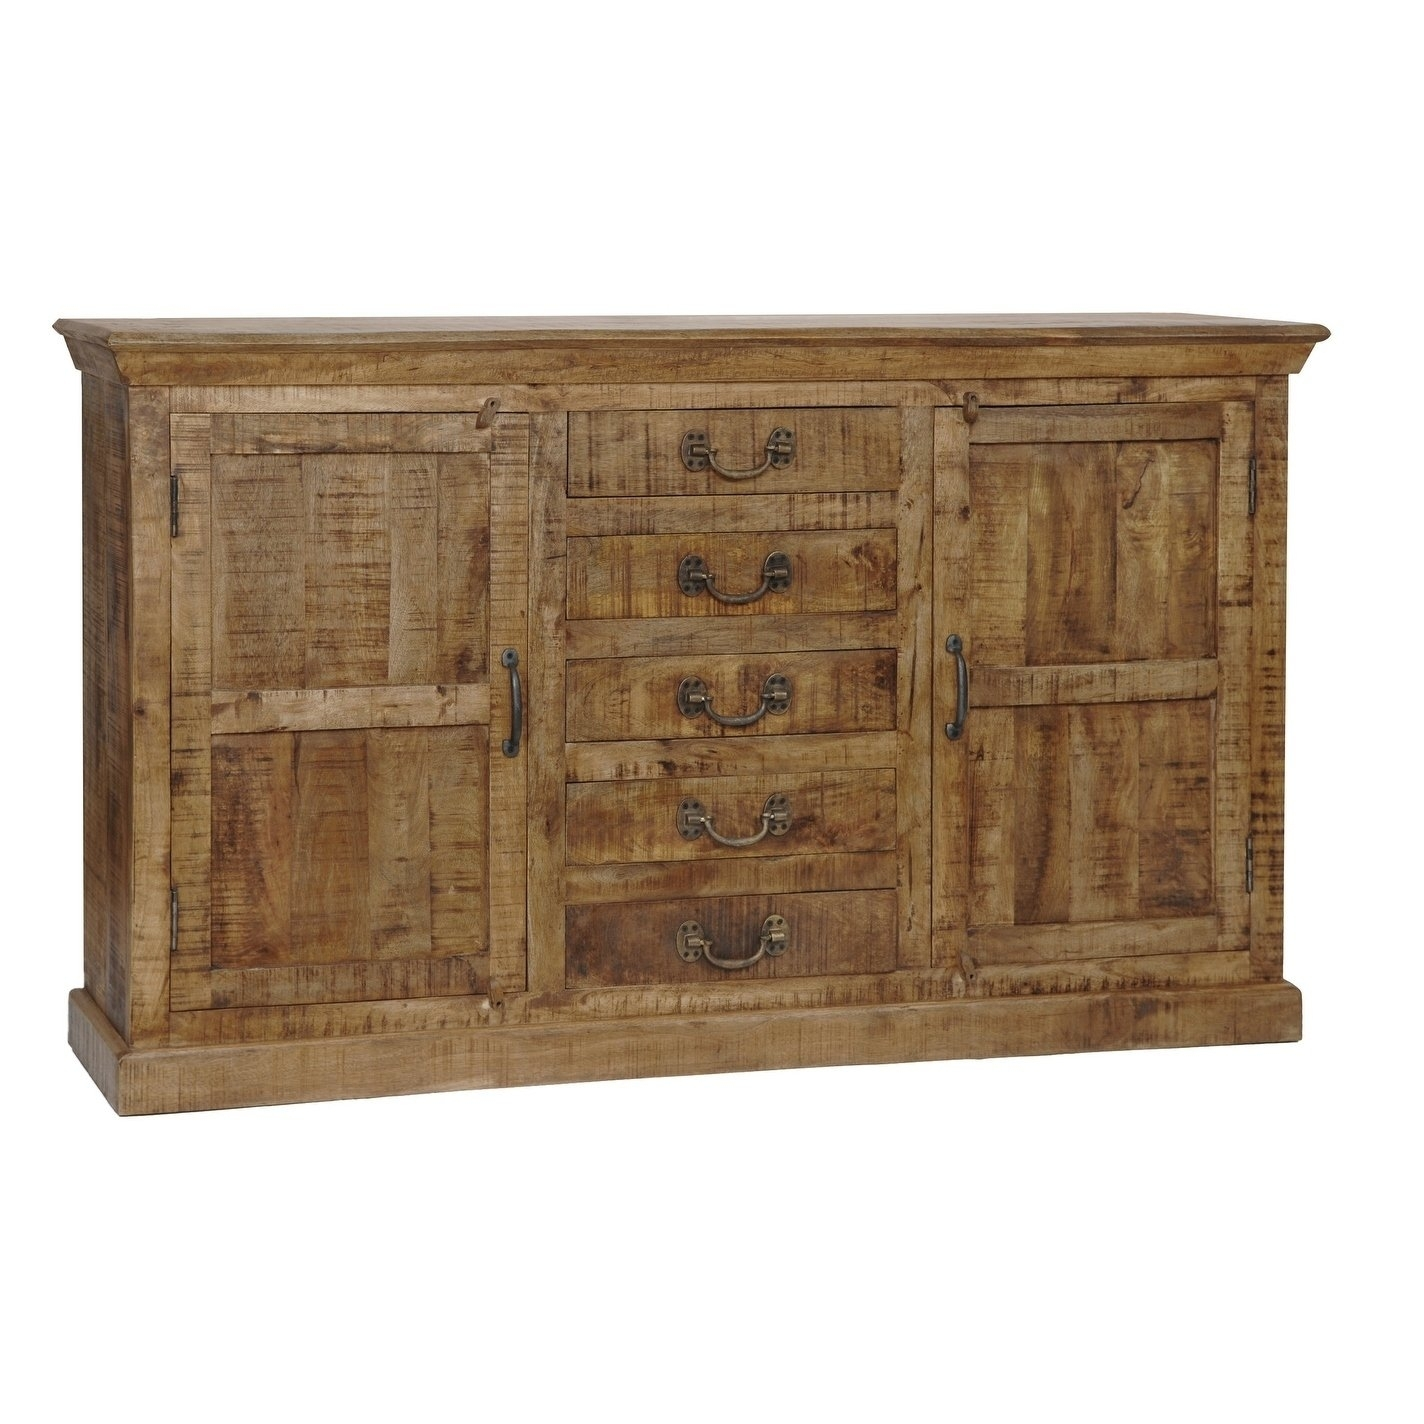 Bengal Manor Natural Mango Wood 5-Drawer 2-Door Sideboard - Free intended for Mango Wood 2-Door/2-Drawer Sideboards (Image 5 of 30)